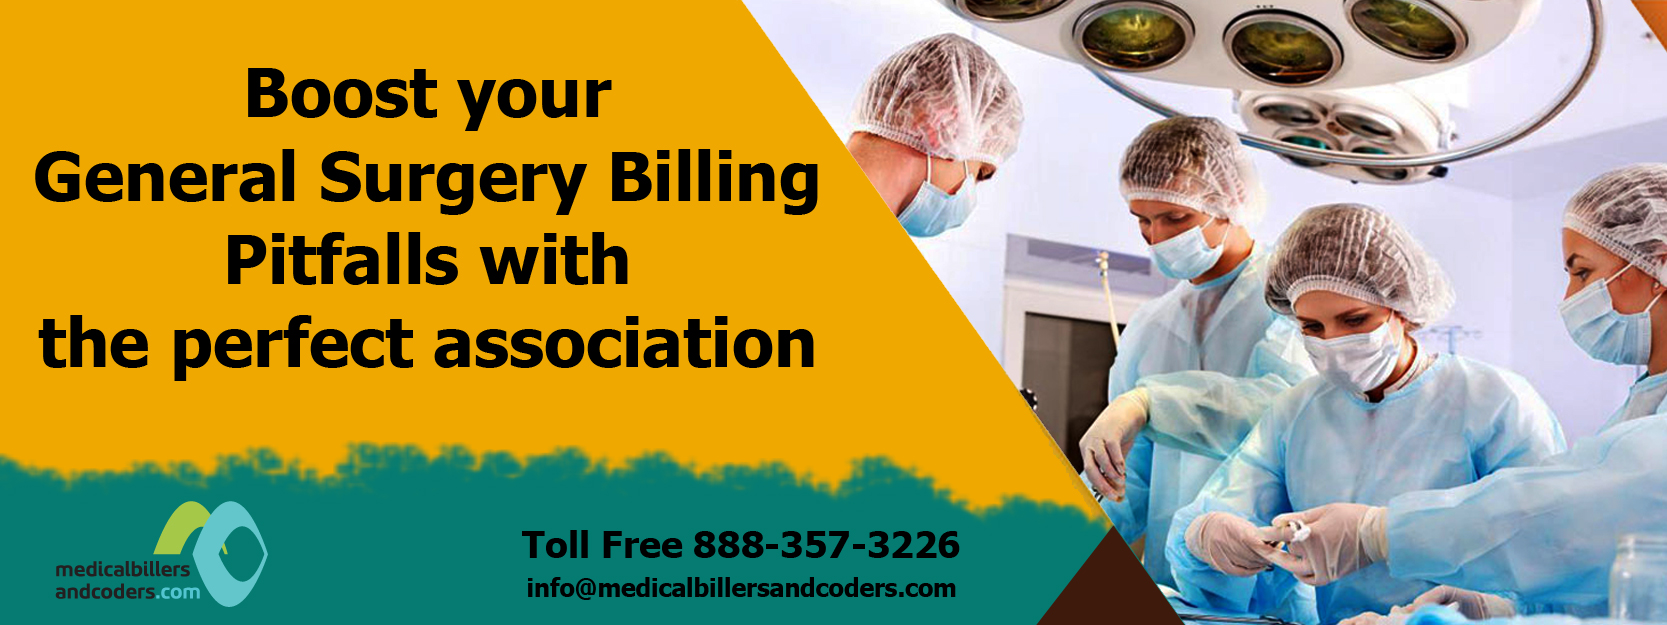 Boost your General Surgery Billing Pitfalls with the perfect association